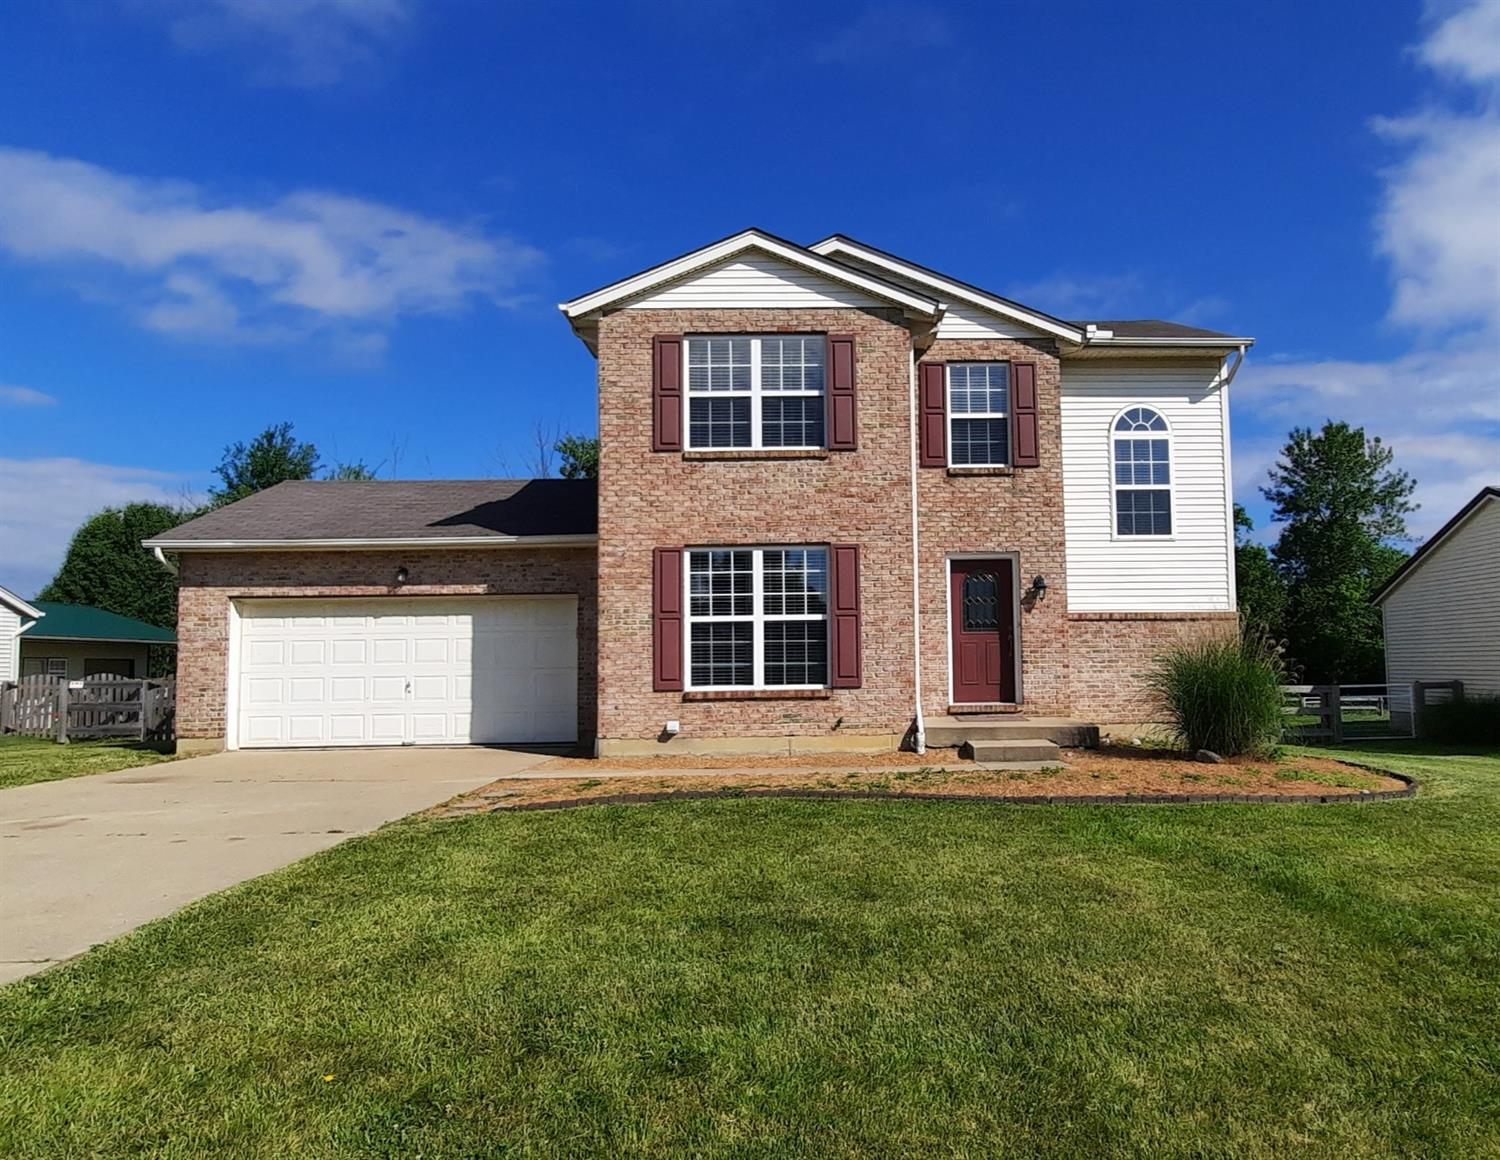 Property for sale at 6031 Sean Circle, Blanchester,  Ohio 45107